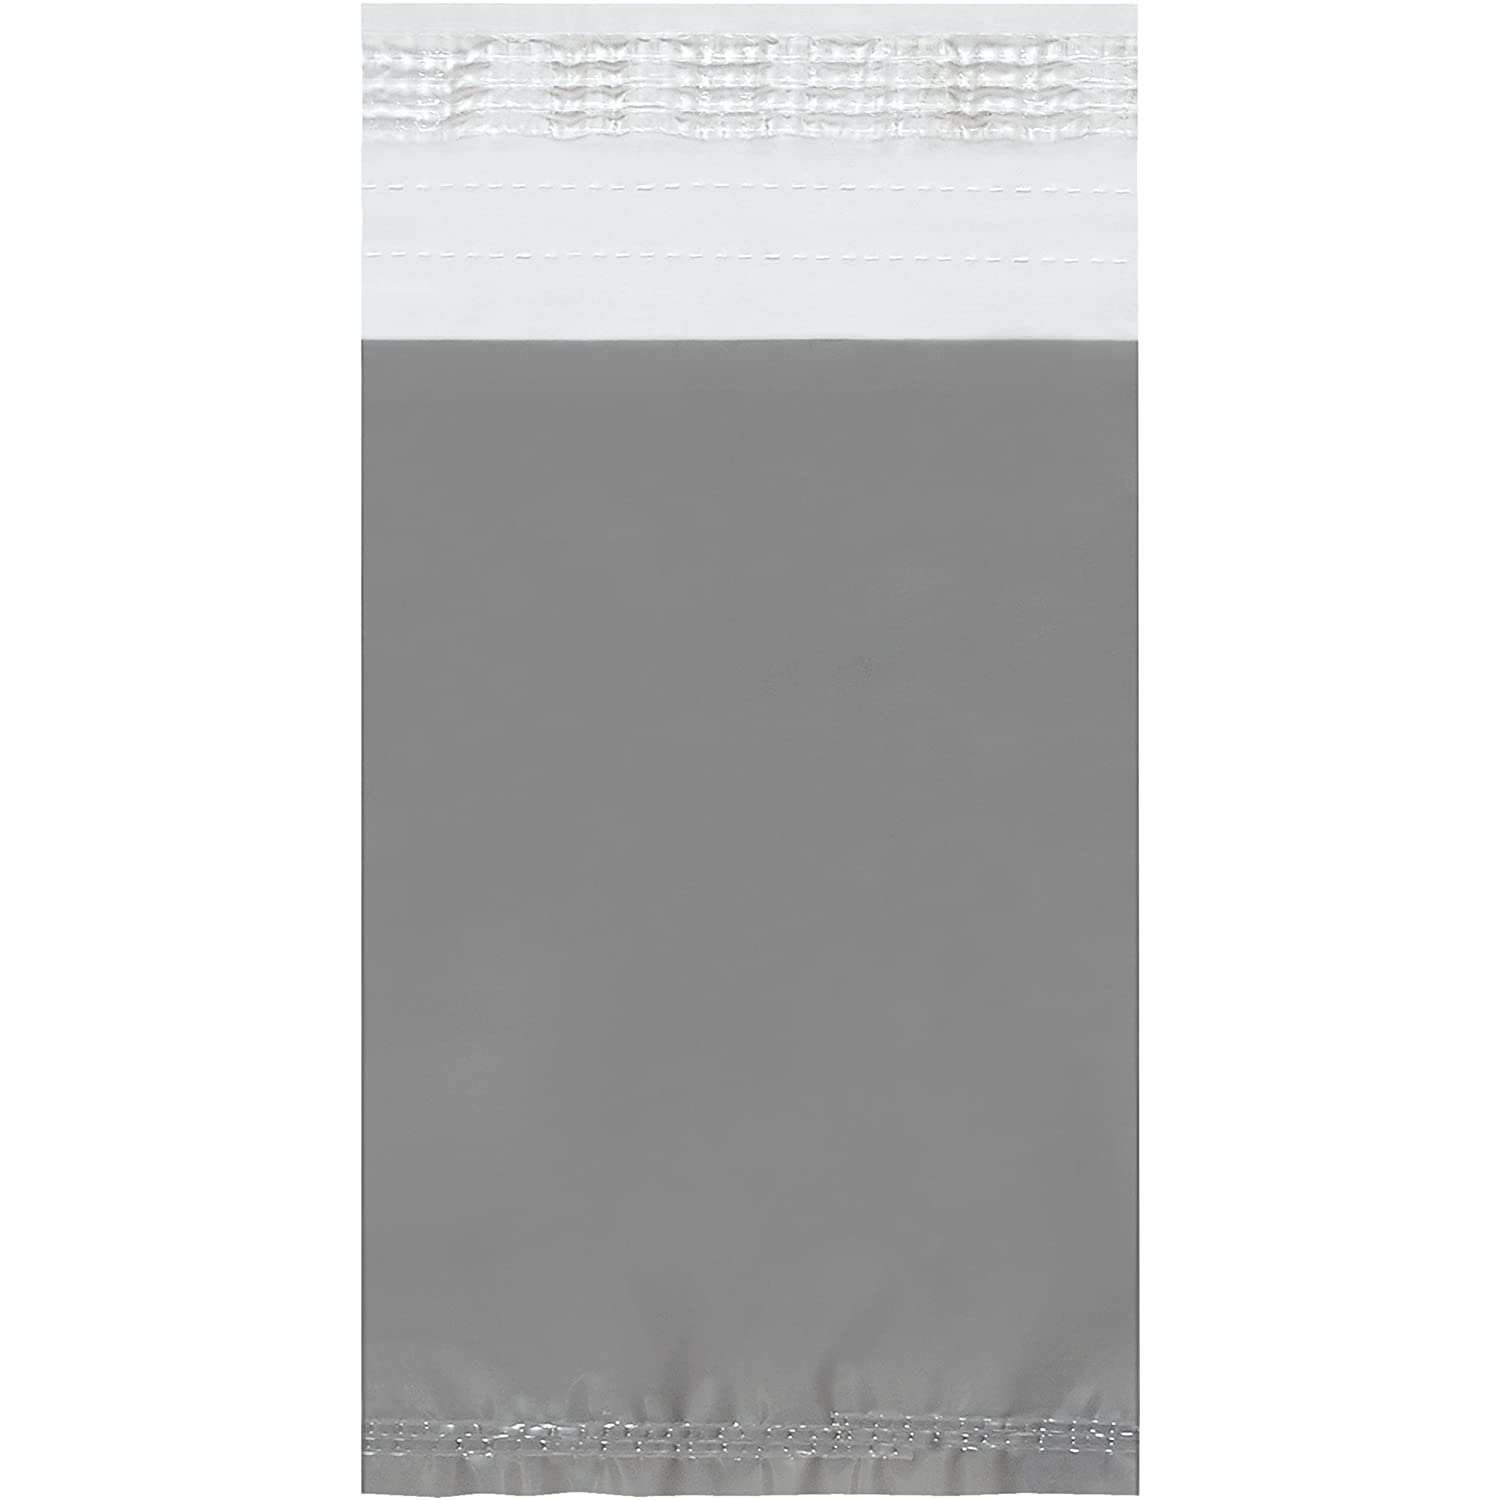 100//Case Clear View Poly Mailers 5 x 7 Clear//White